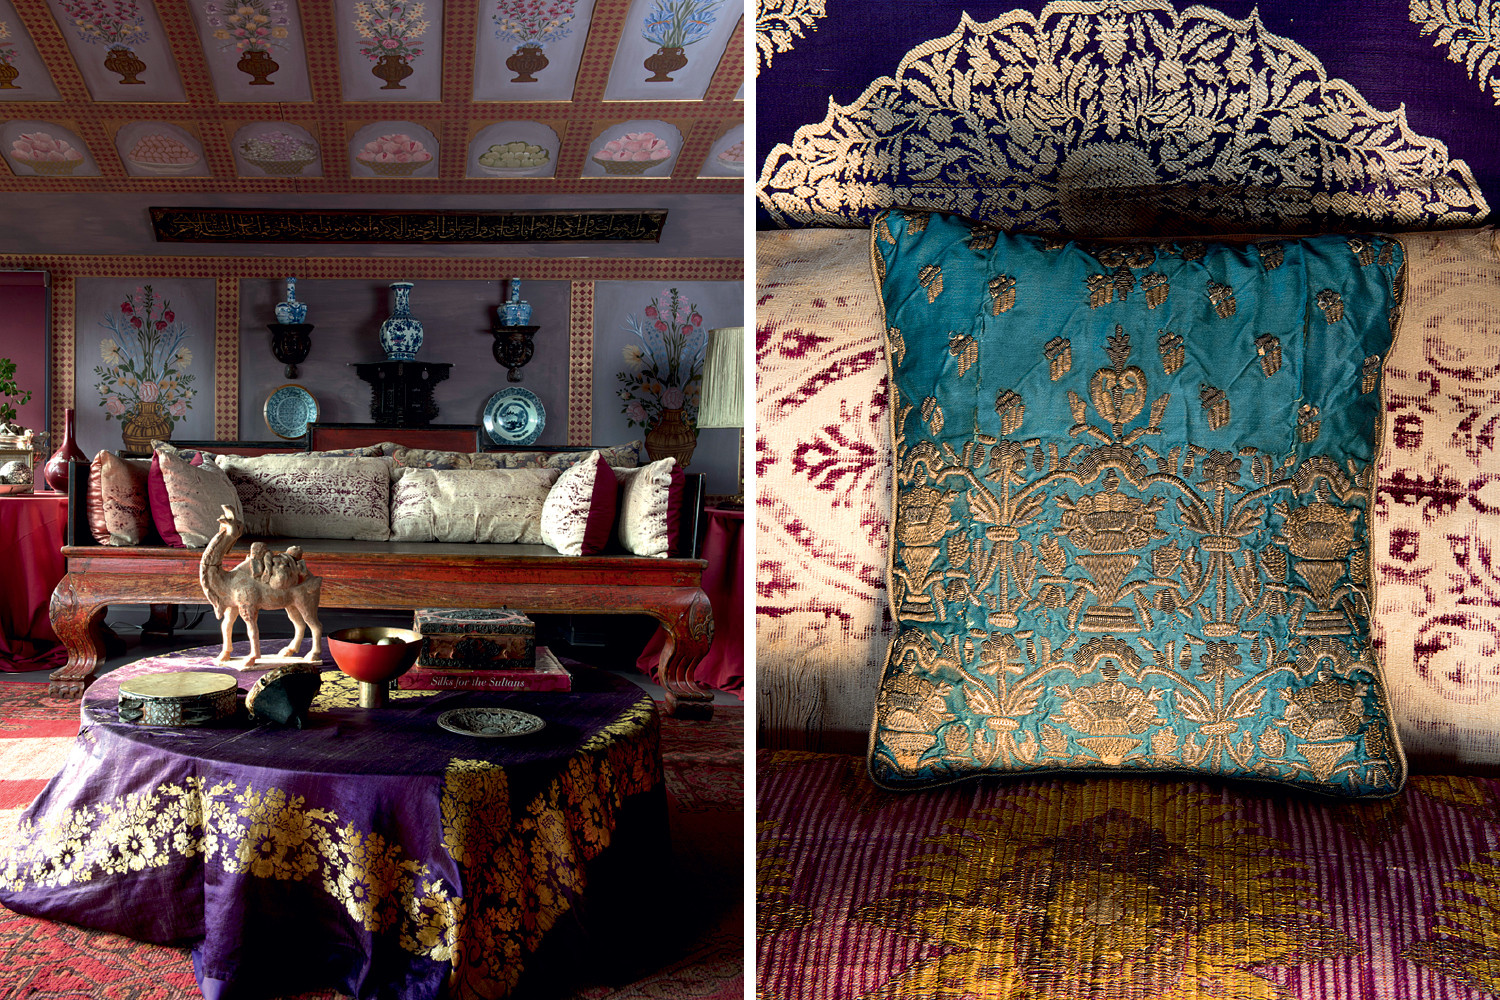 Delve into this richly elaborate style in the forthcoming bookOttoman Chic(Assouline).